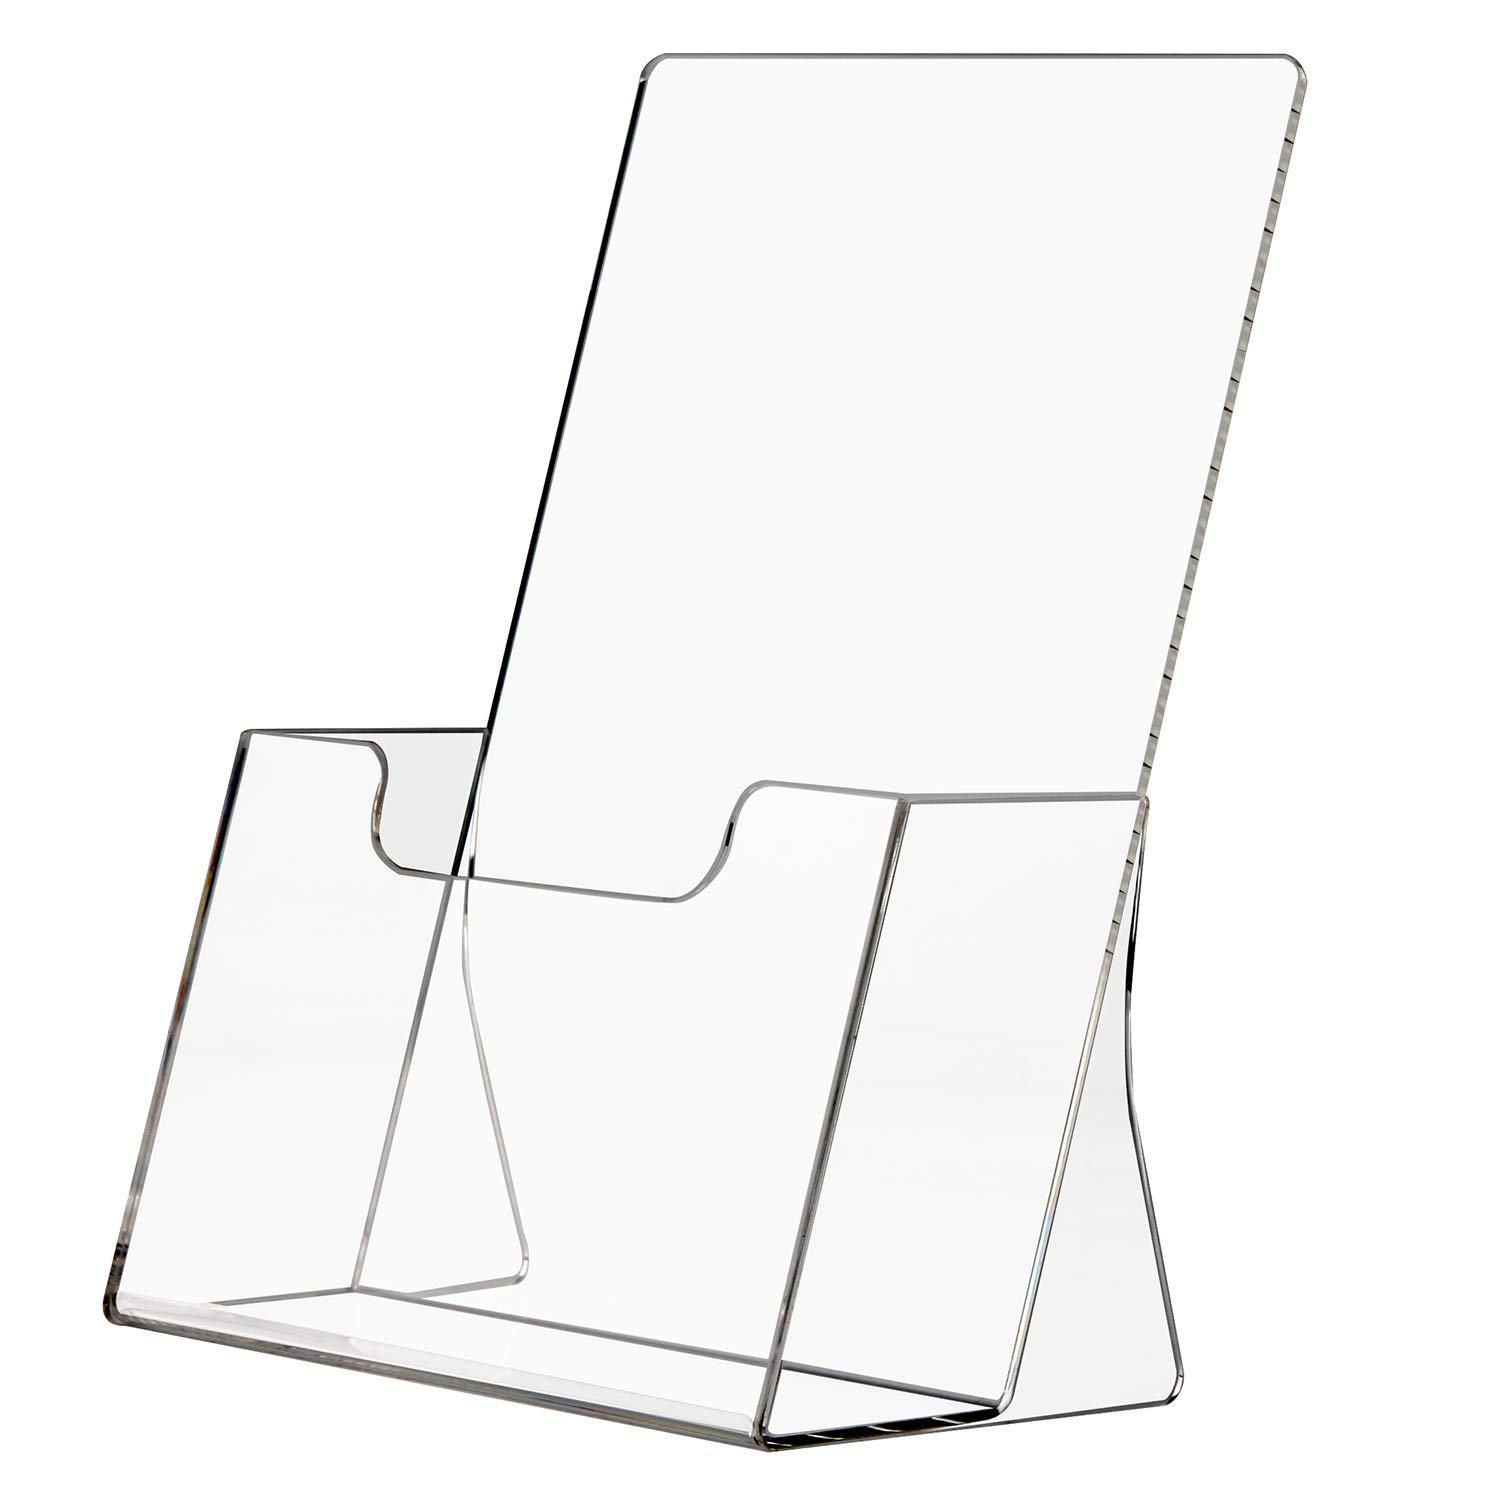 NIUBEE Clear Acrylic Trifold Brochure Holder,Plastic Counter Top Literature Flyer Booklet Catalog Display Holder - Unbreakable Box Package(4'' Wide,2 Pack)